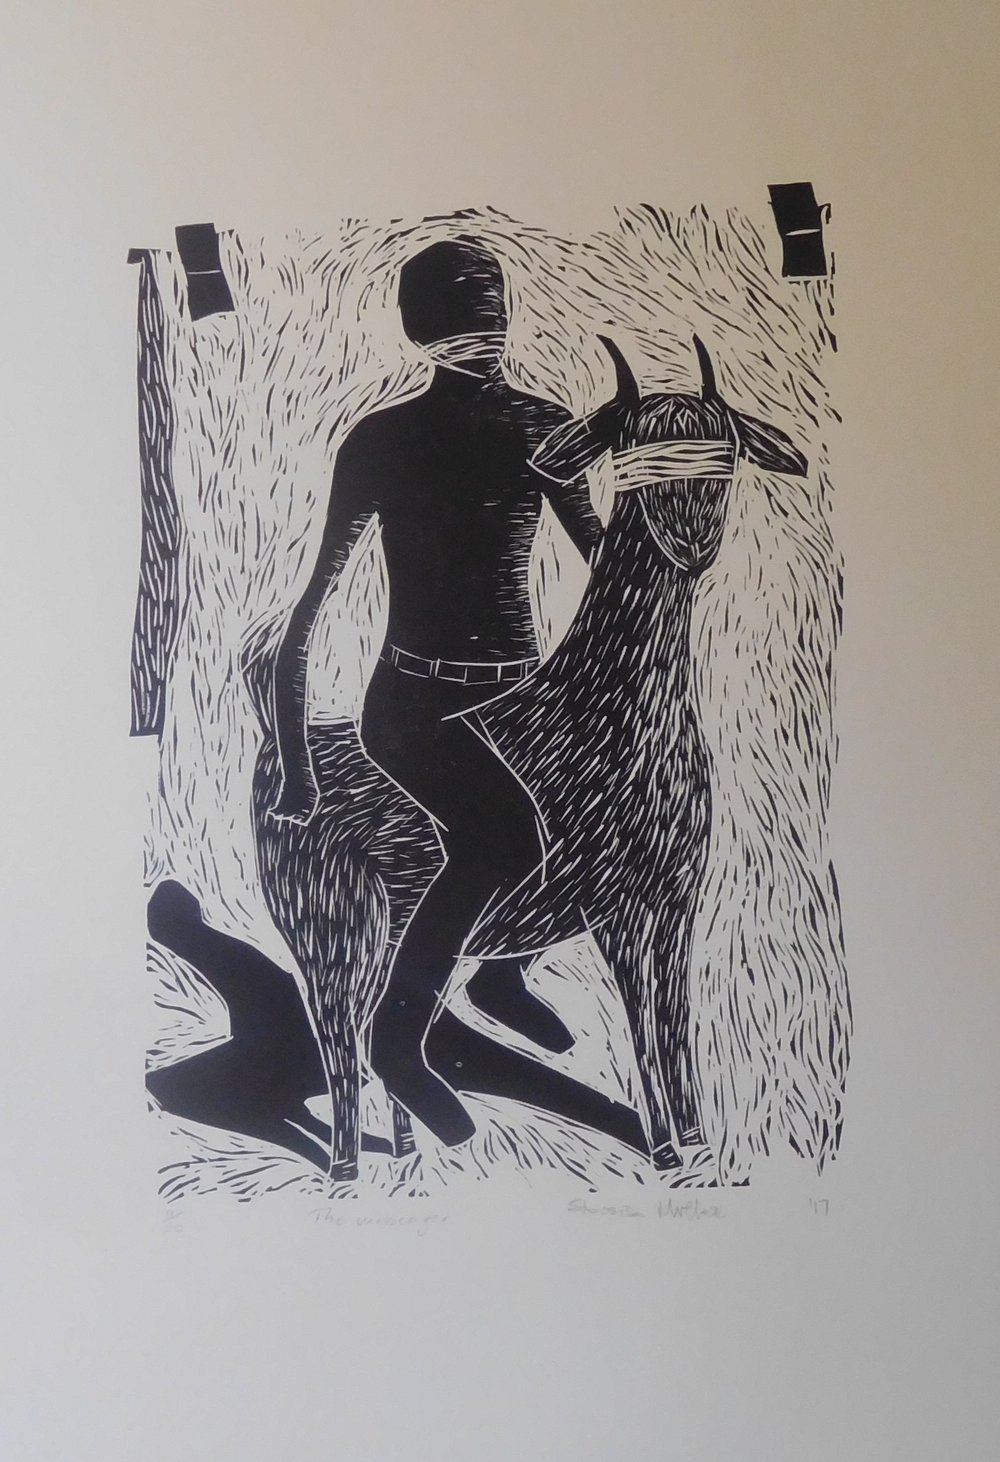 Above: Sibusiso Mvelase, The Messenger, linocut print